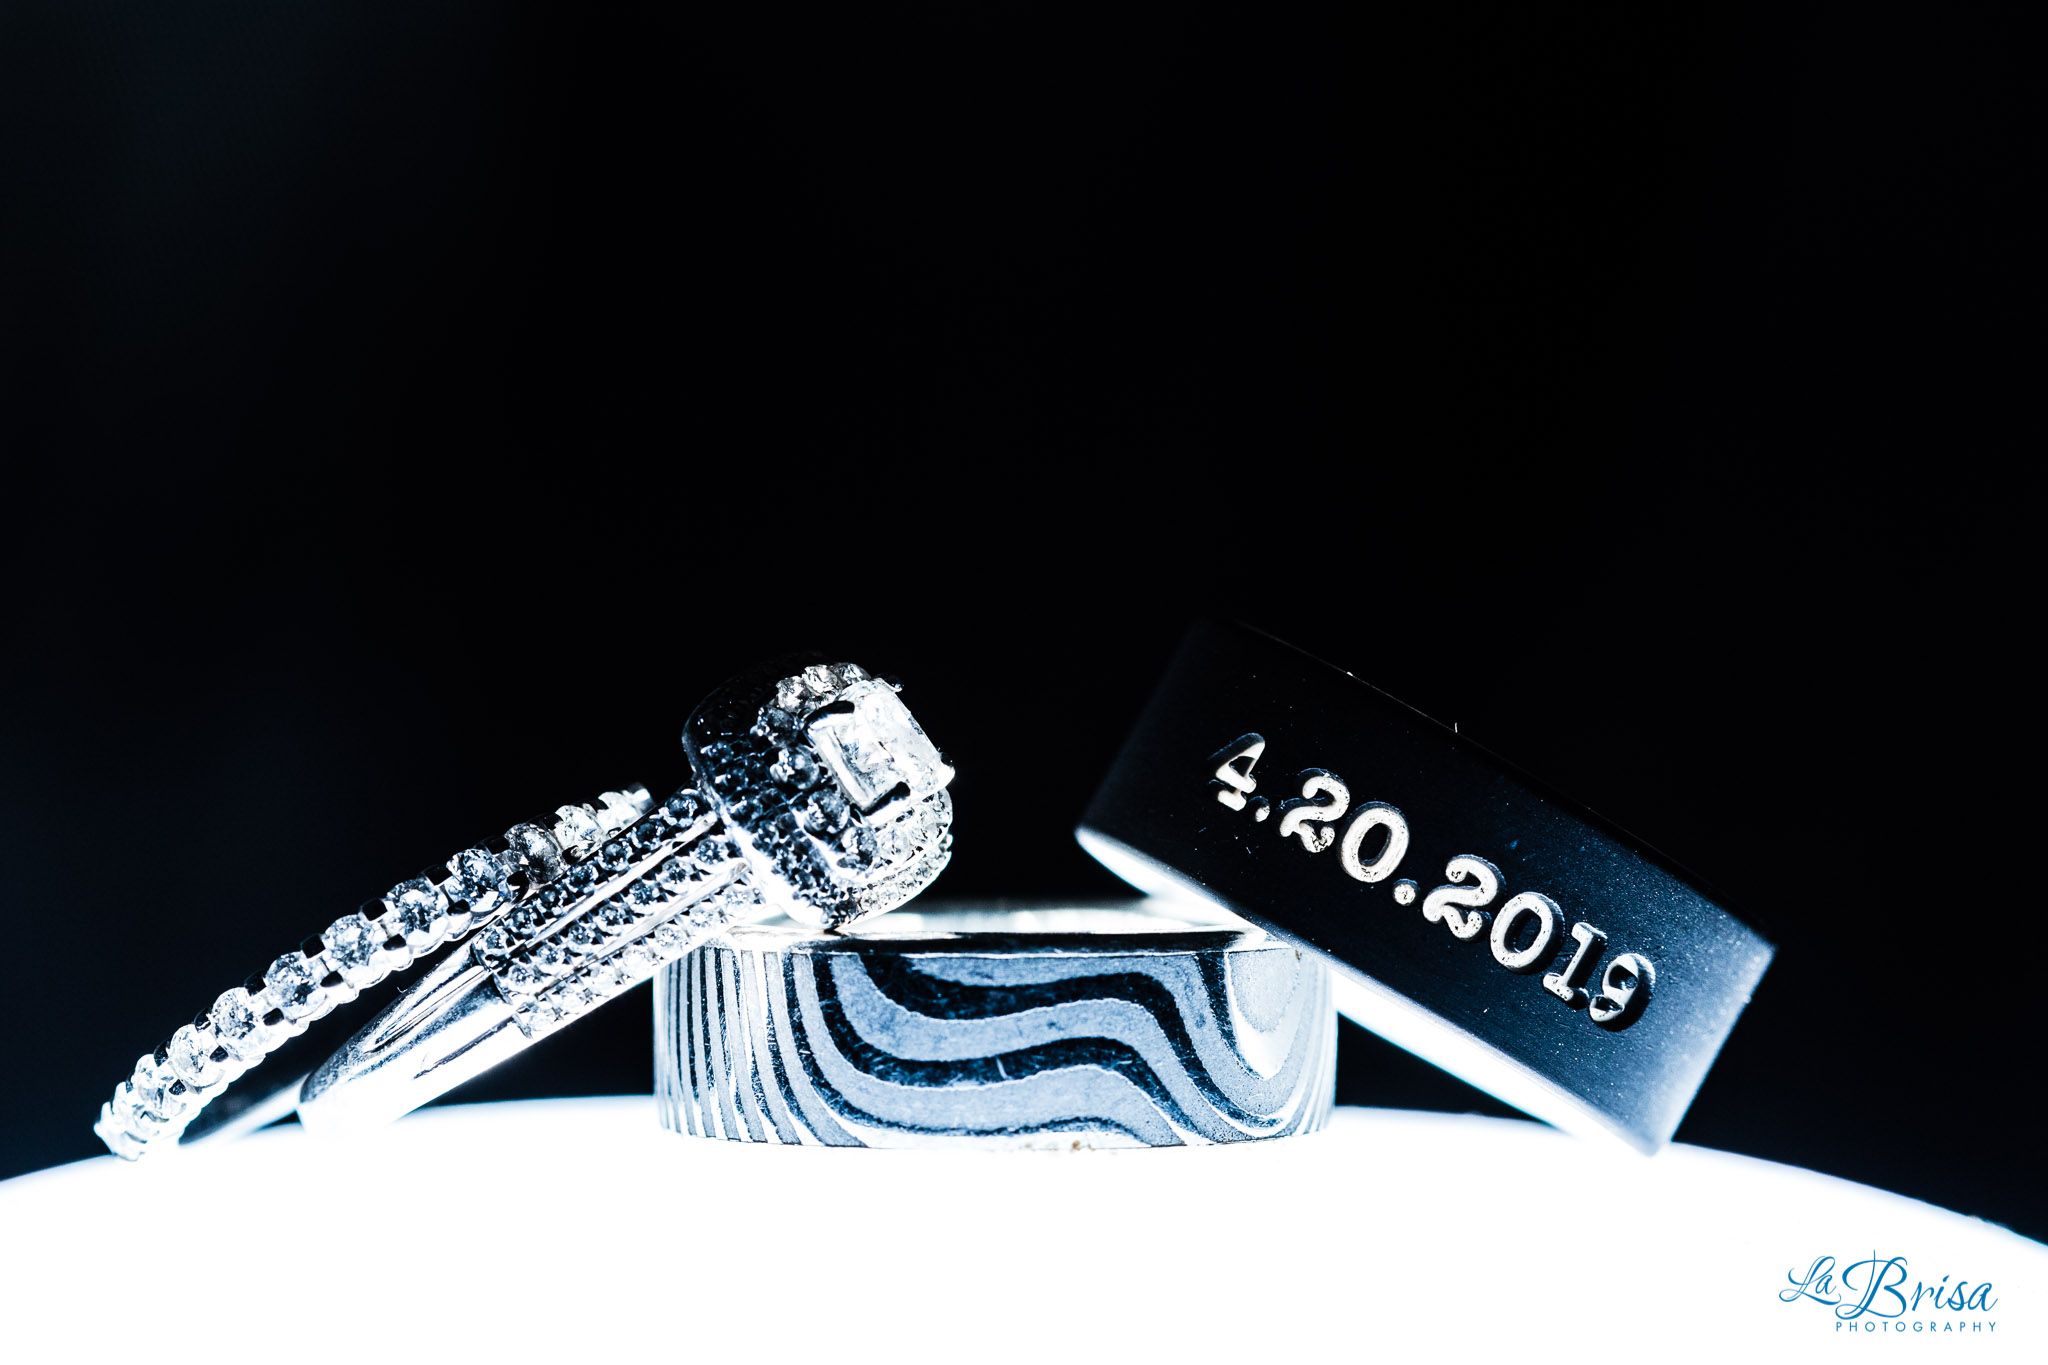 rubber wedding ring date inscribed